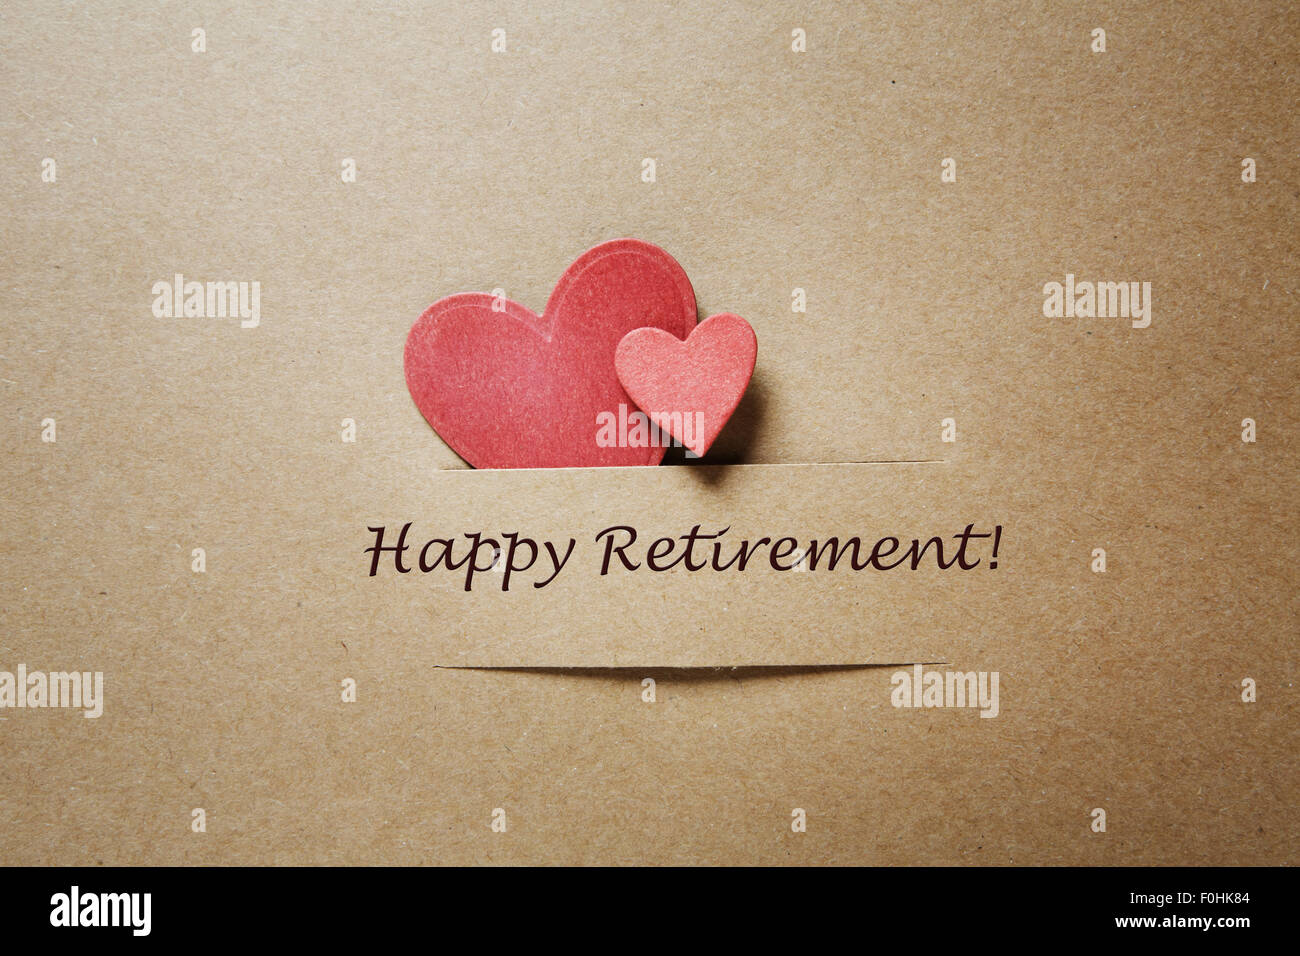 Happy retirement greeting card stock photos happy retirement happy retirement message card with small red hearts stock image m4hsunfo